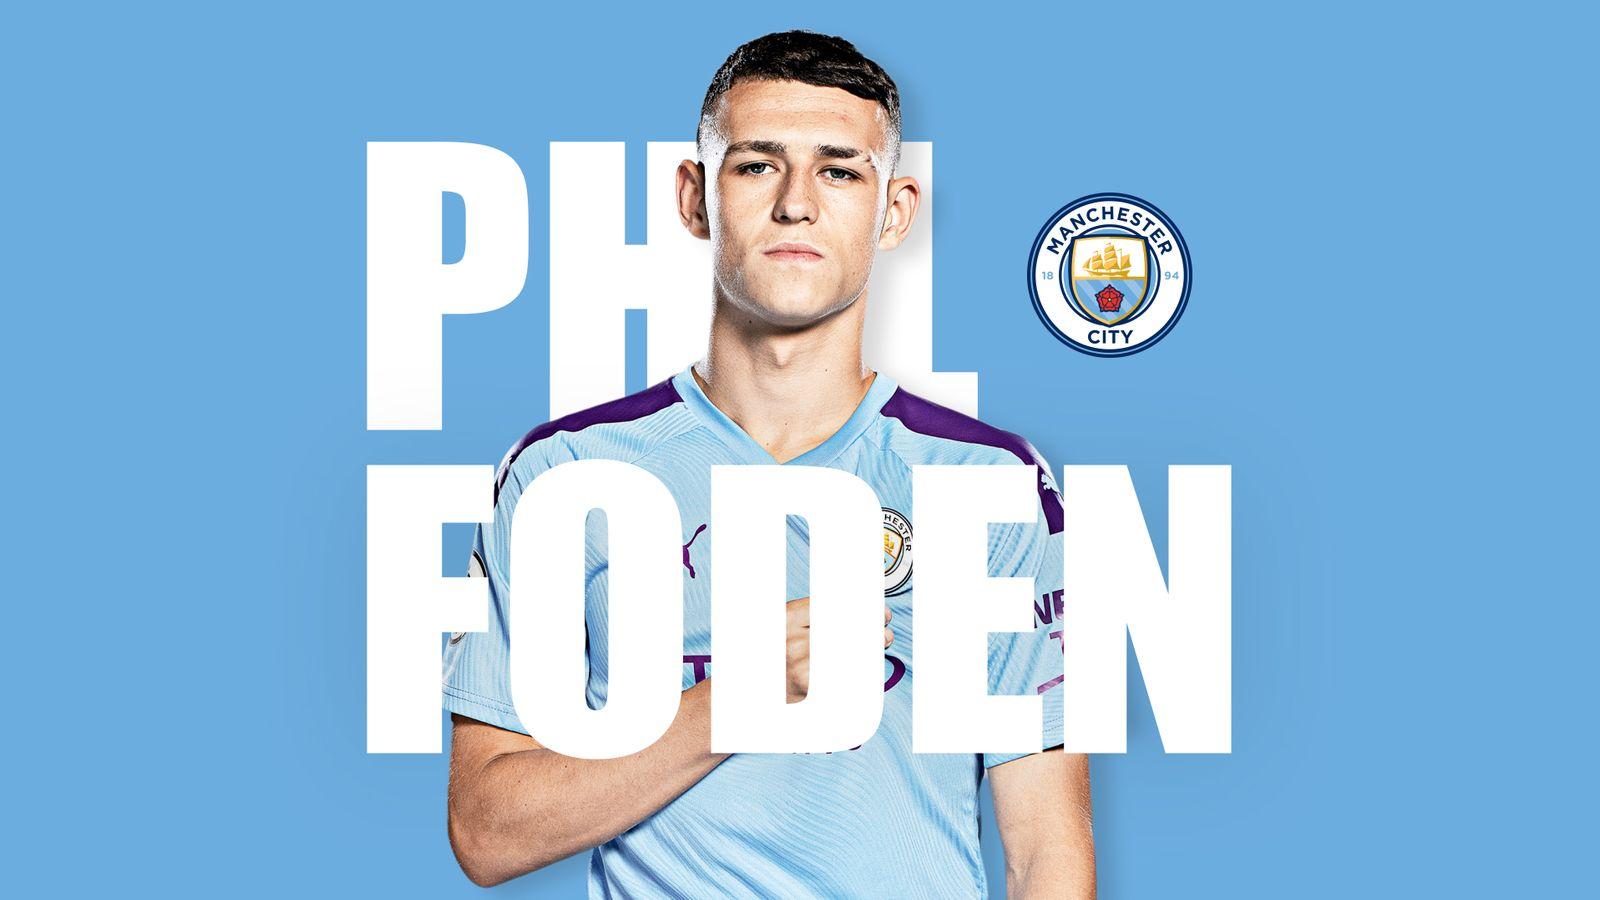 Phil Foden 2021 Wallpapers - Wallpaper Cave